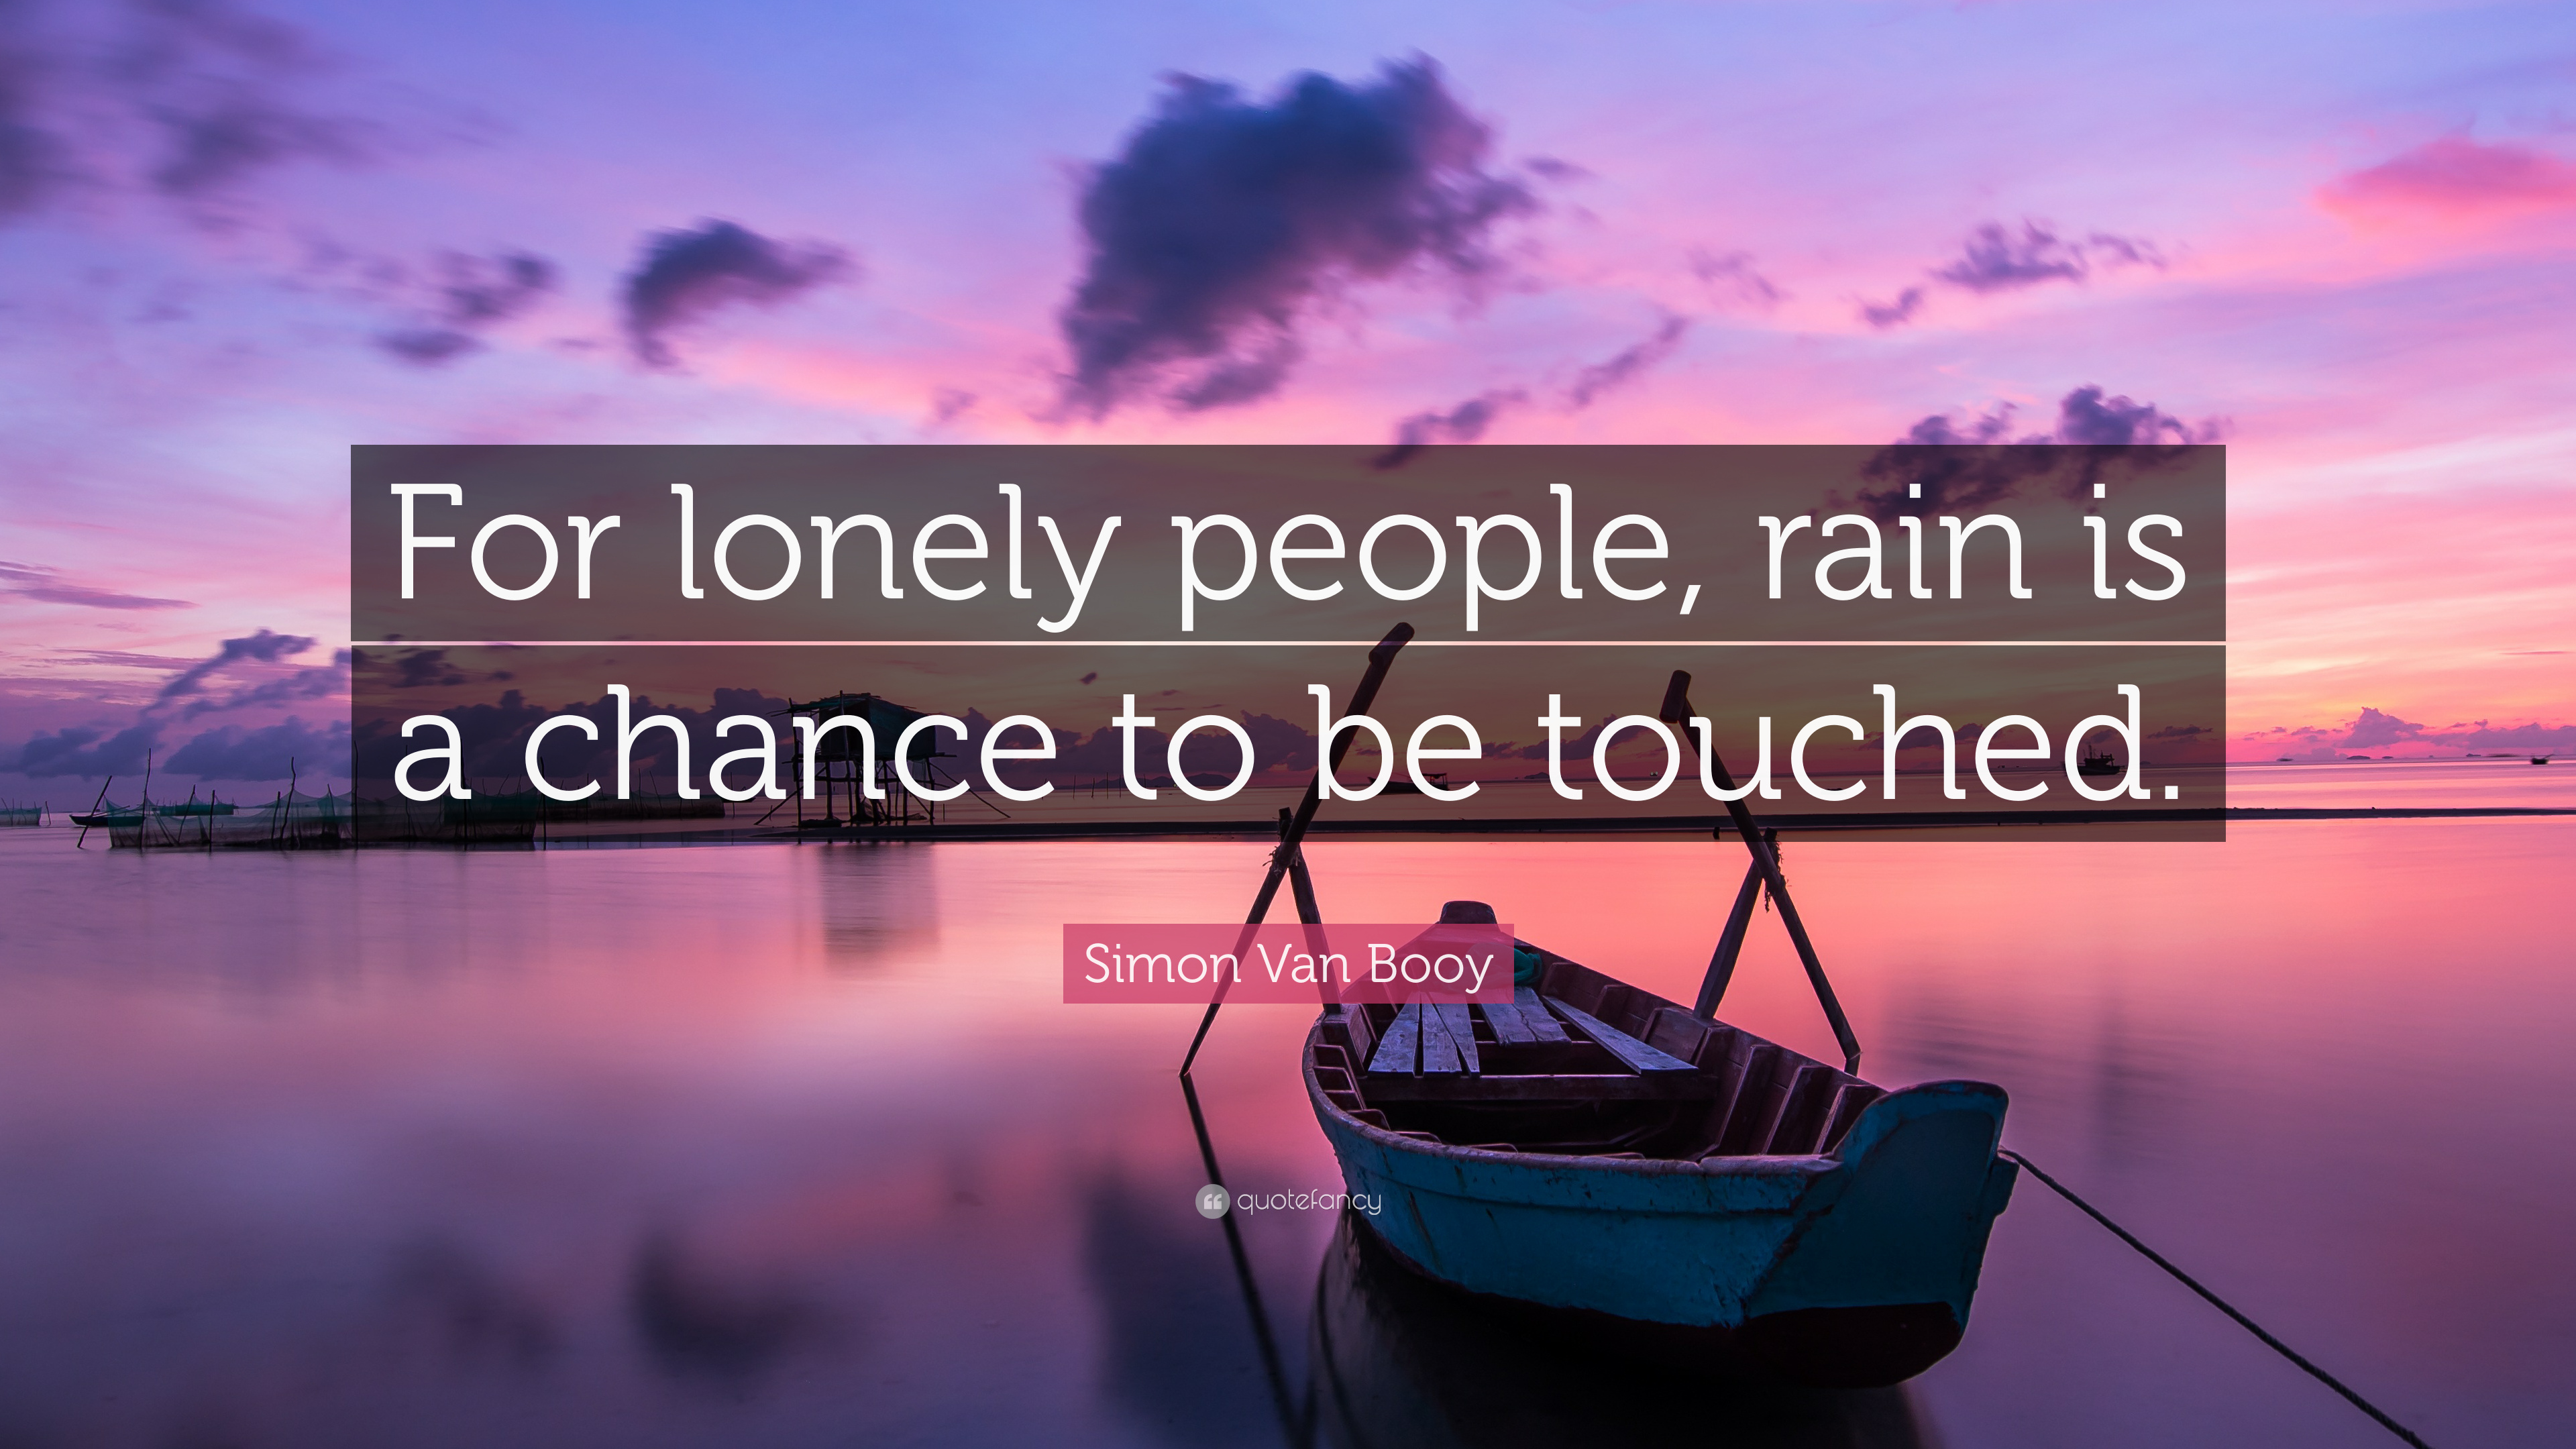 Simon Van Booy Quote For Lonely People Rain Is A Chance border=